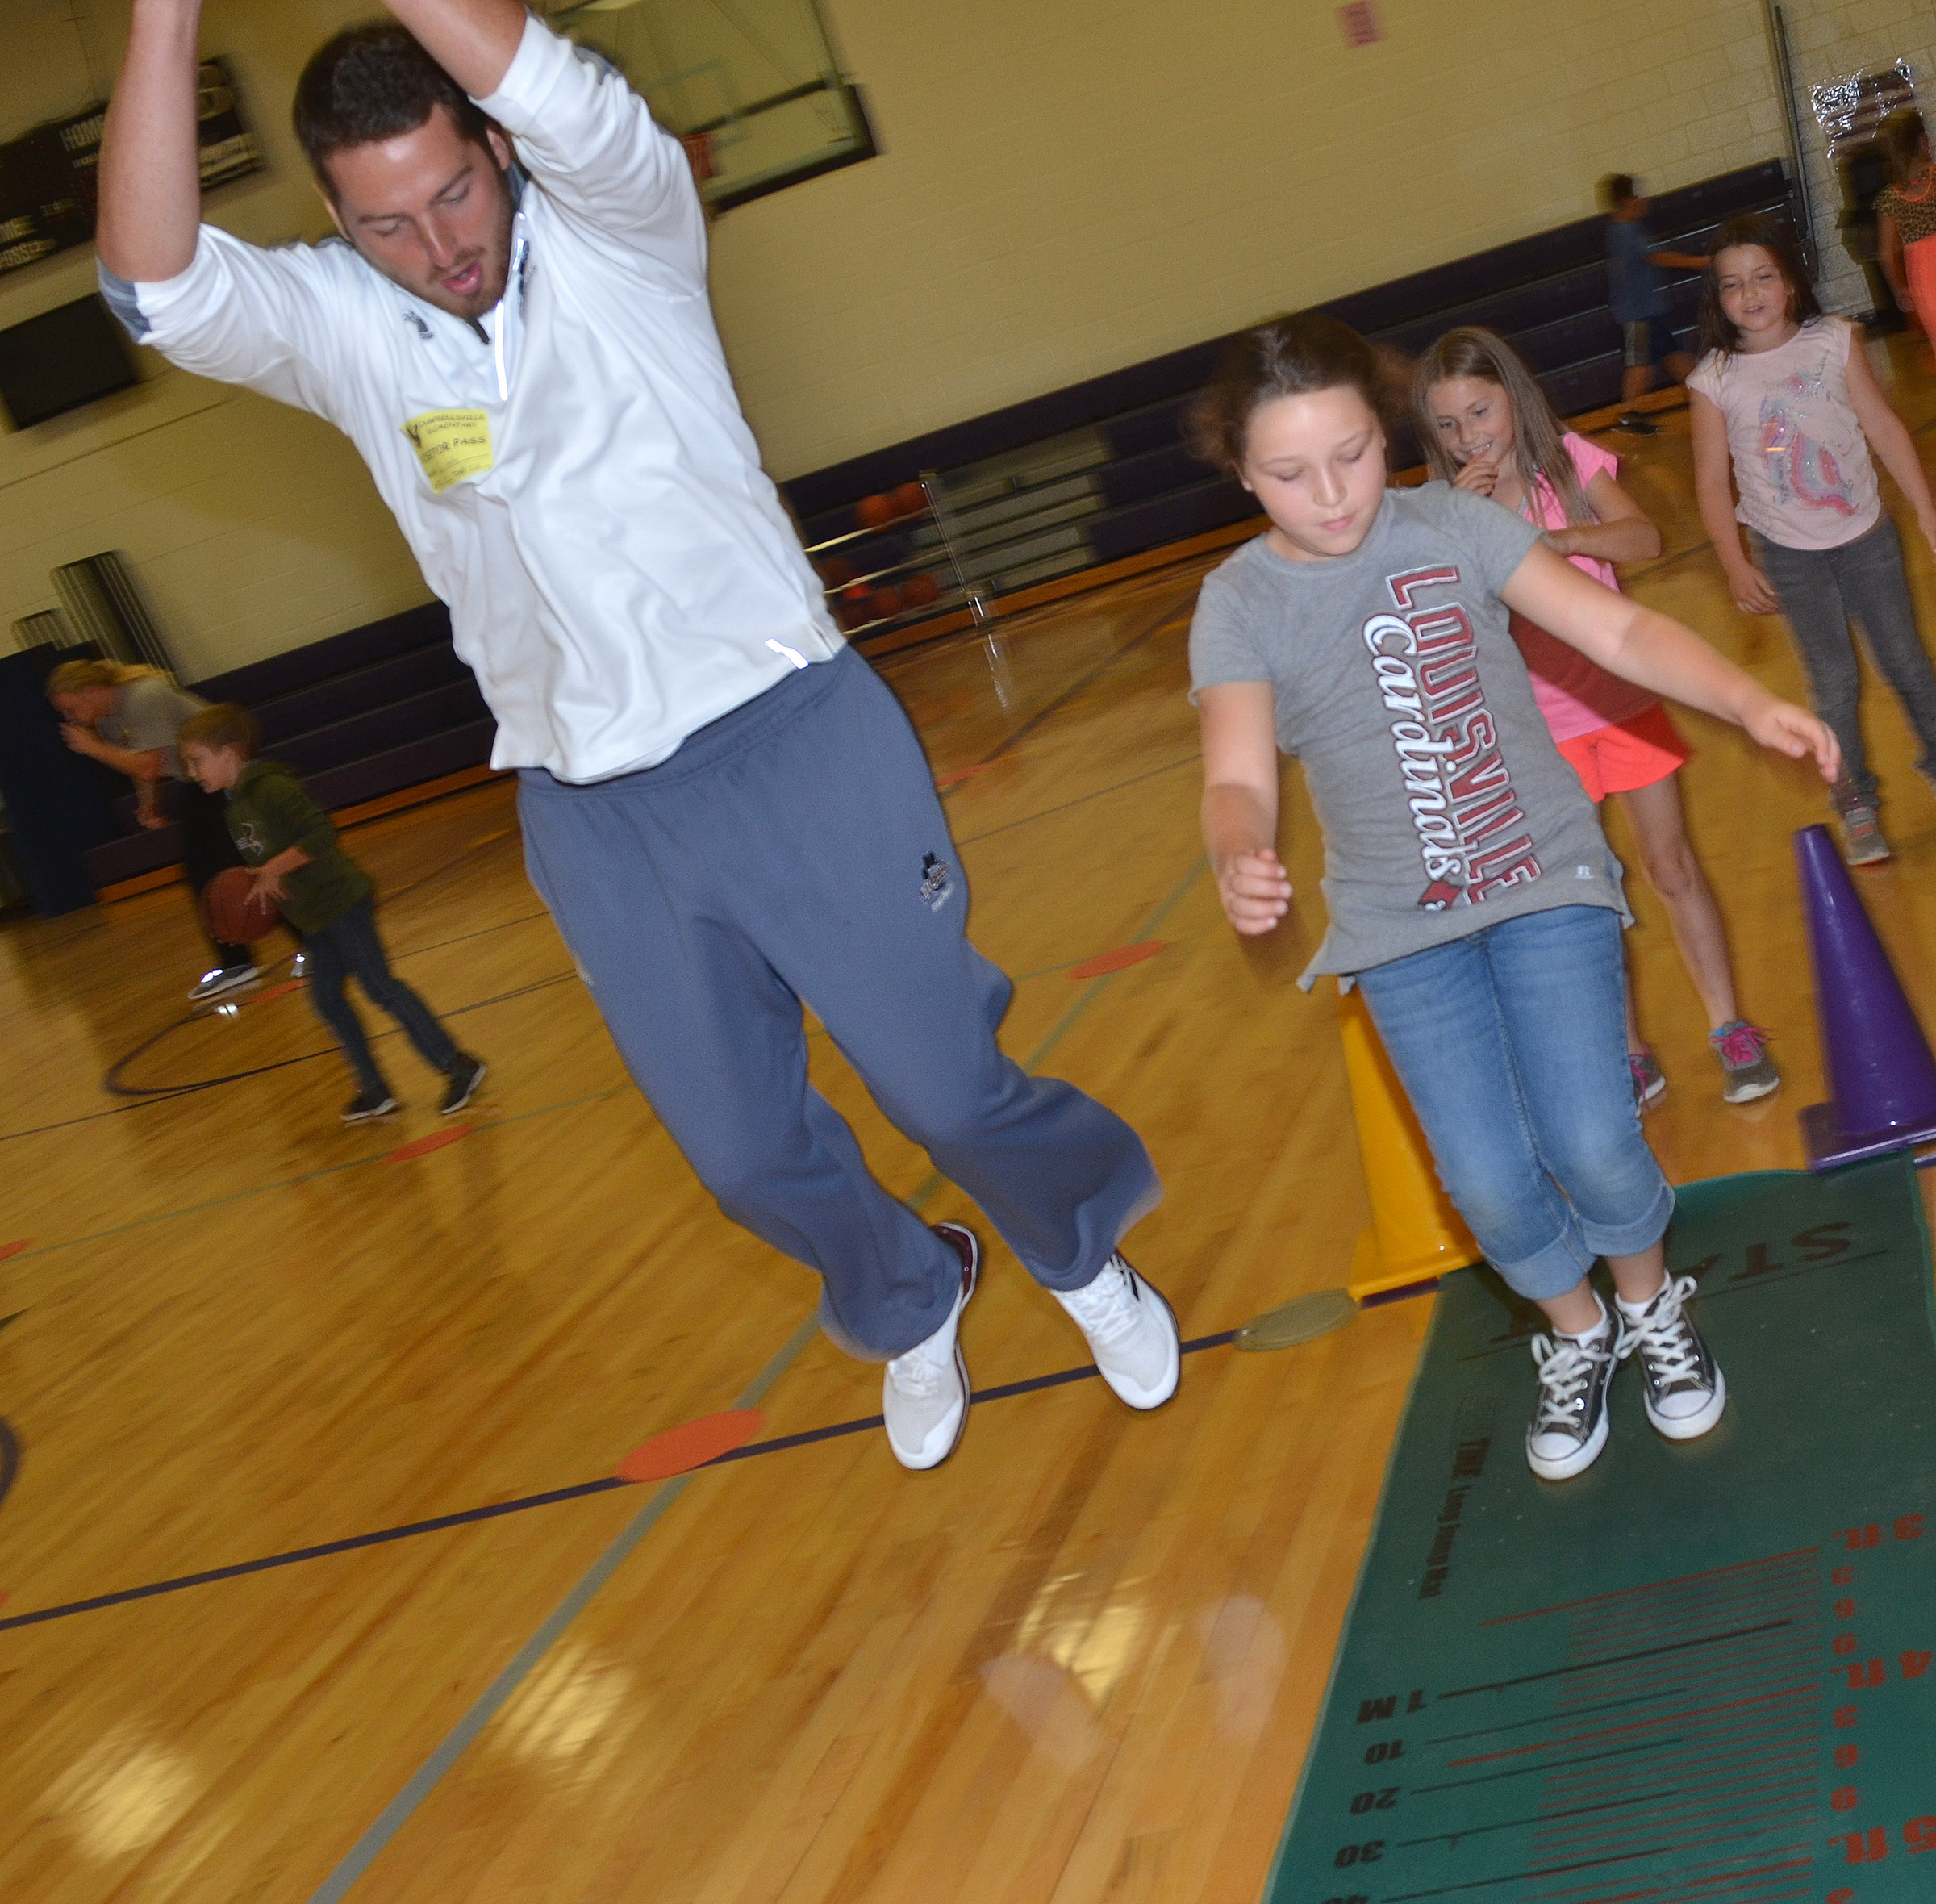 CES third-grader Keely Rakes jumps with Campbellsville University student Ryan Grattan.